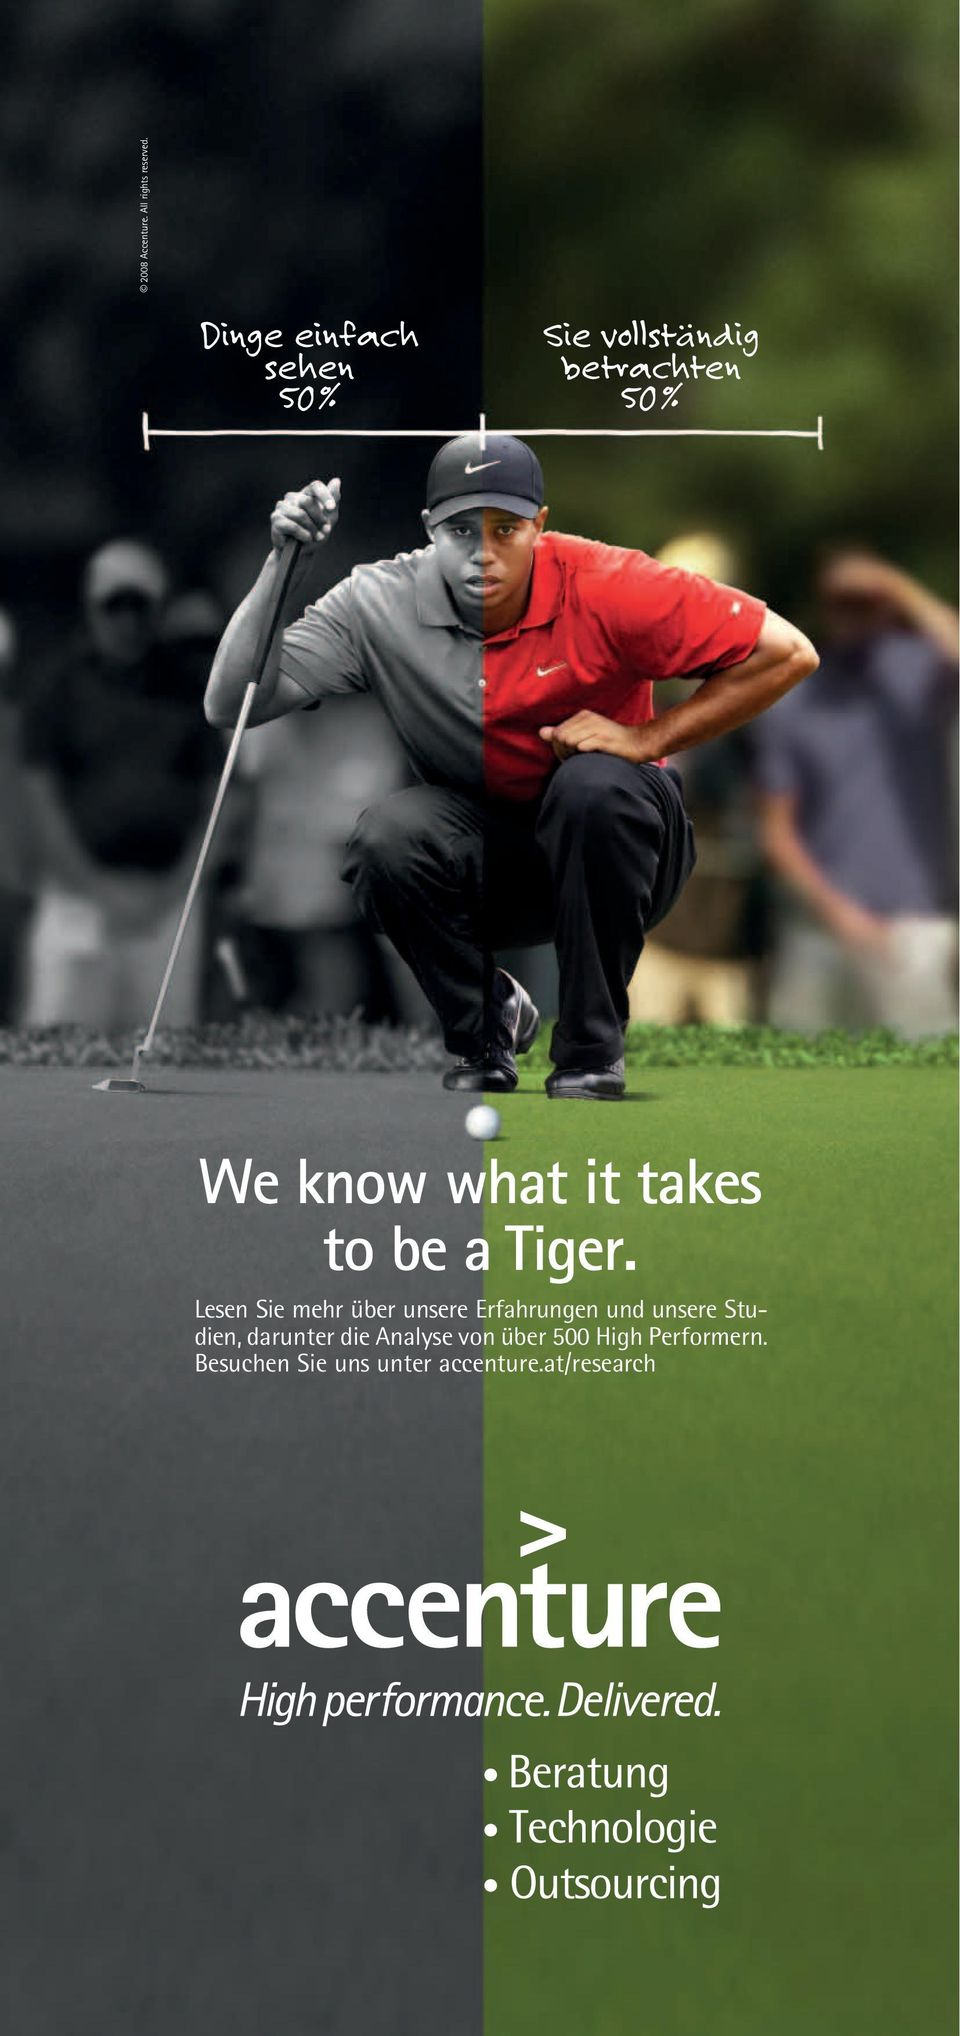 it takes to be a Tiger.